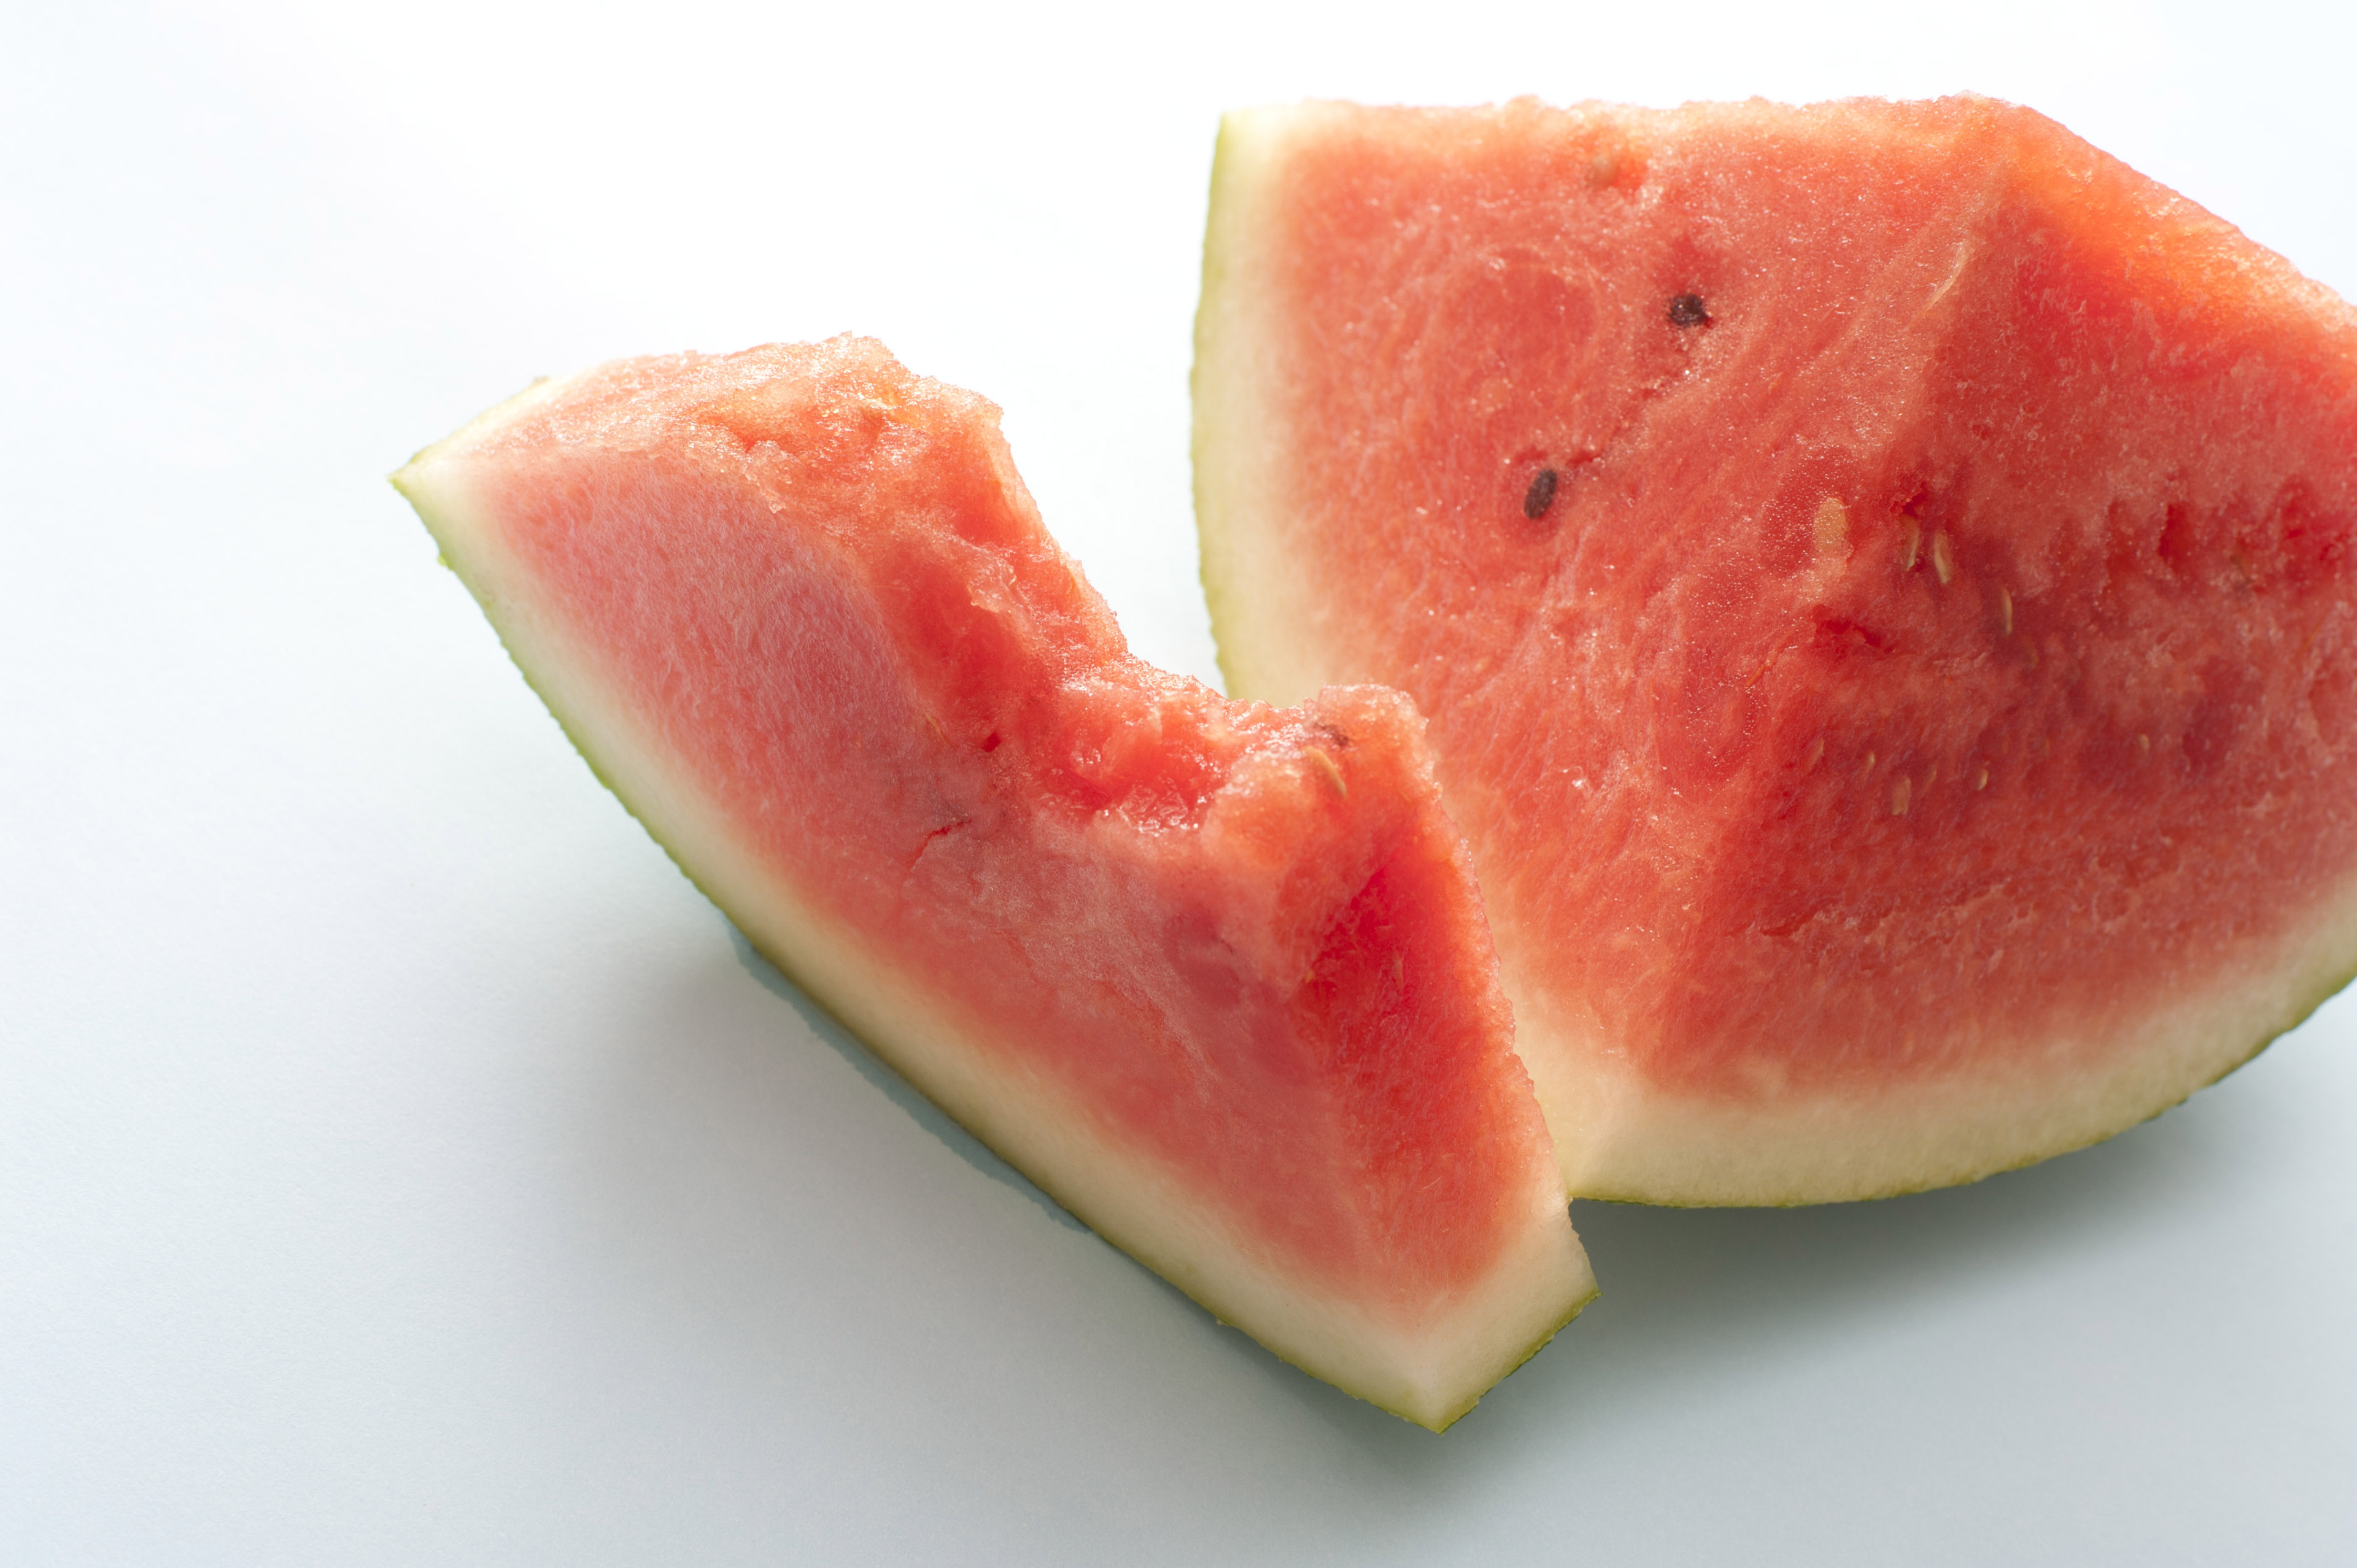 Half eaten slice of fresh juicy watermelon over a white background for a healthy refreshing summer snack